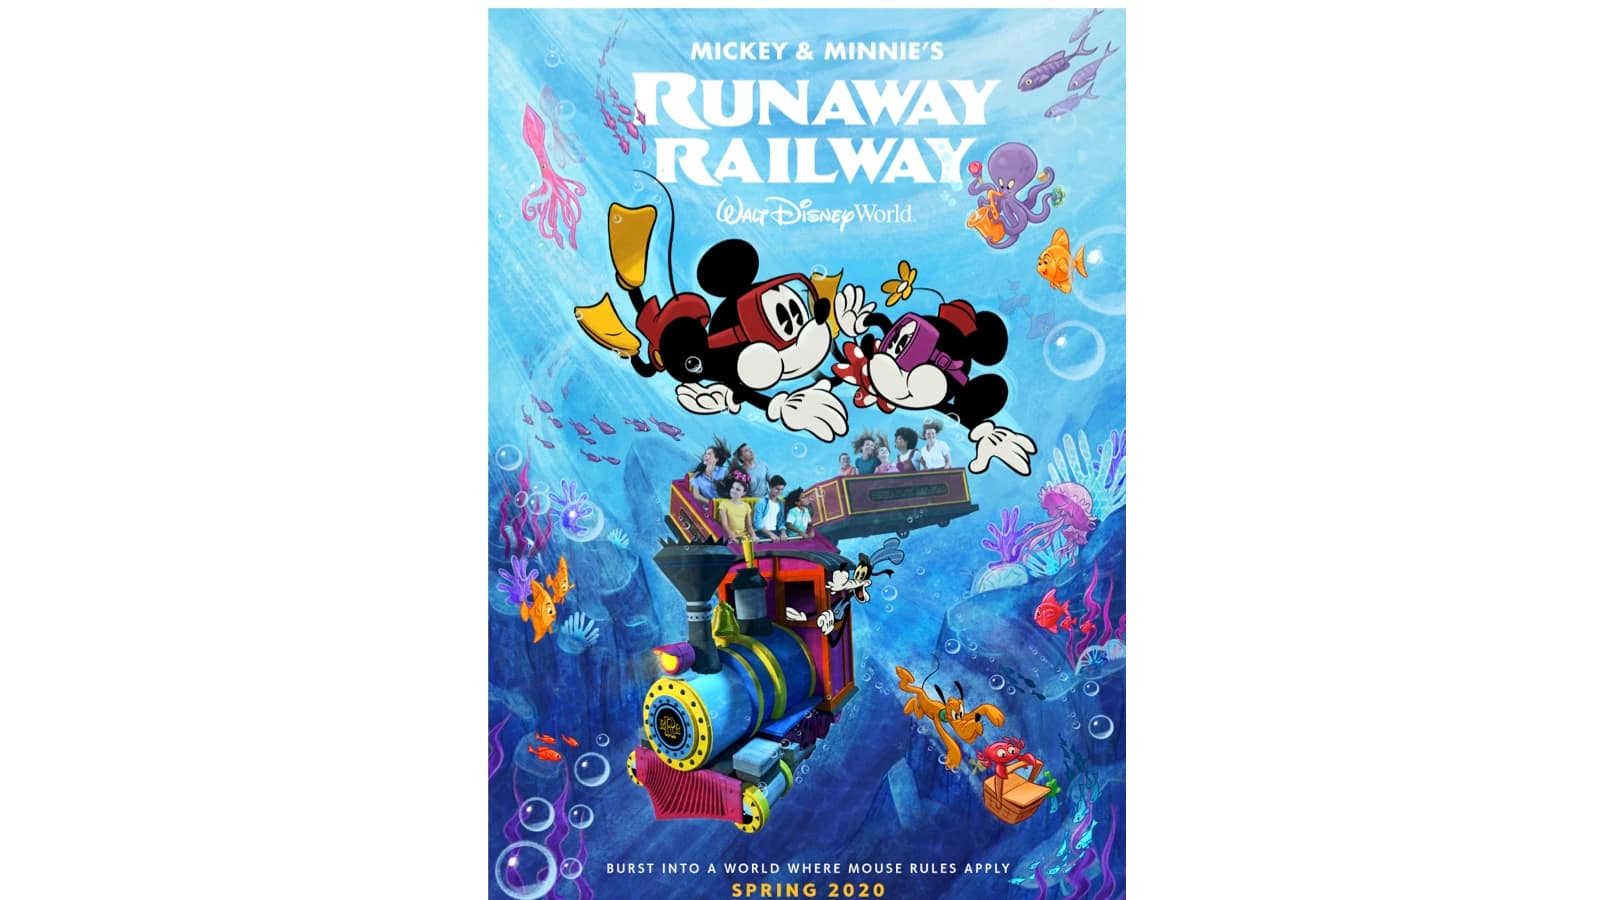 New Poster Unveiled For Mickey Minnie S Runaway Railway Attraction At Disney S Hollywood Studios Disney Parks Blog